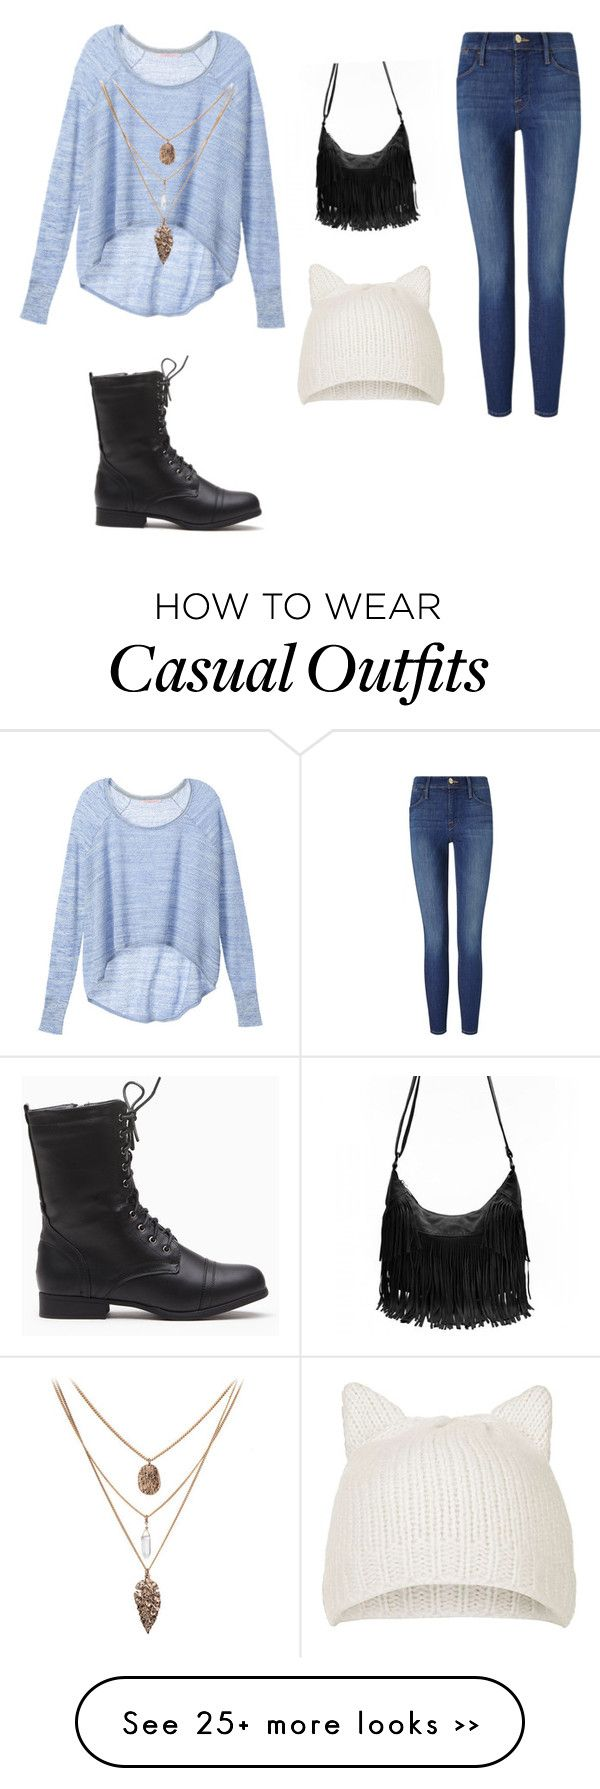 """Casual outfit!"" by missymia121 on Polyvore featuring Victoria's Secret, Frame Denim and Topshop"